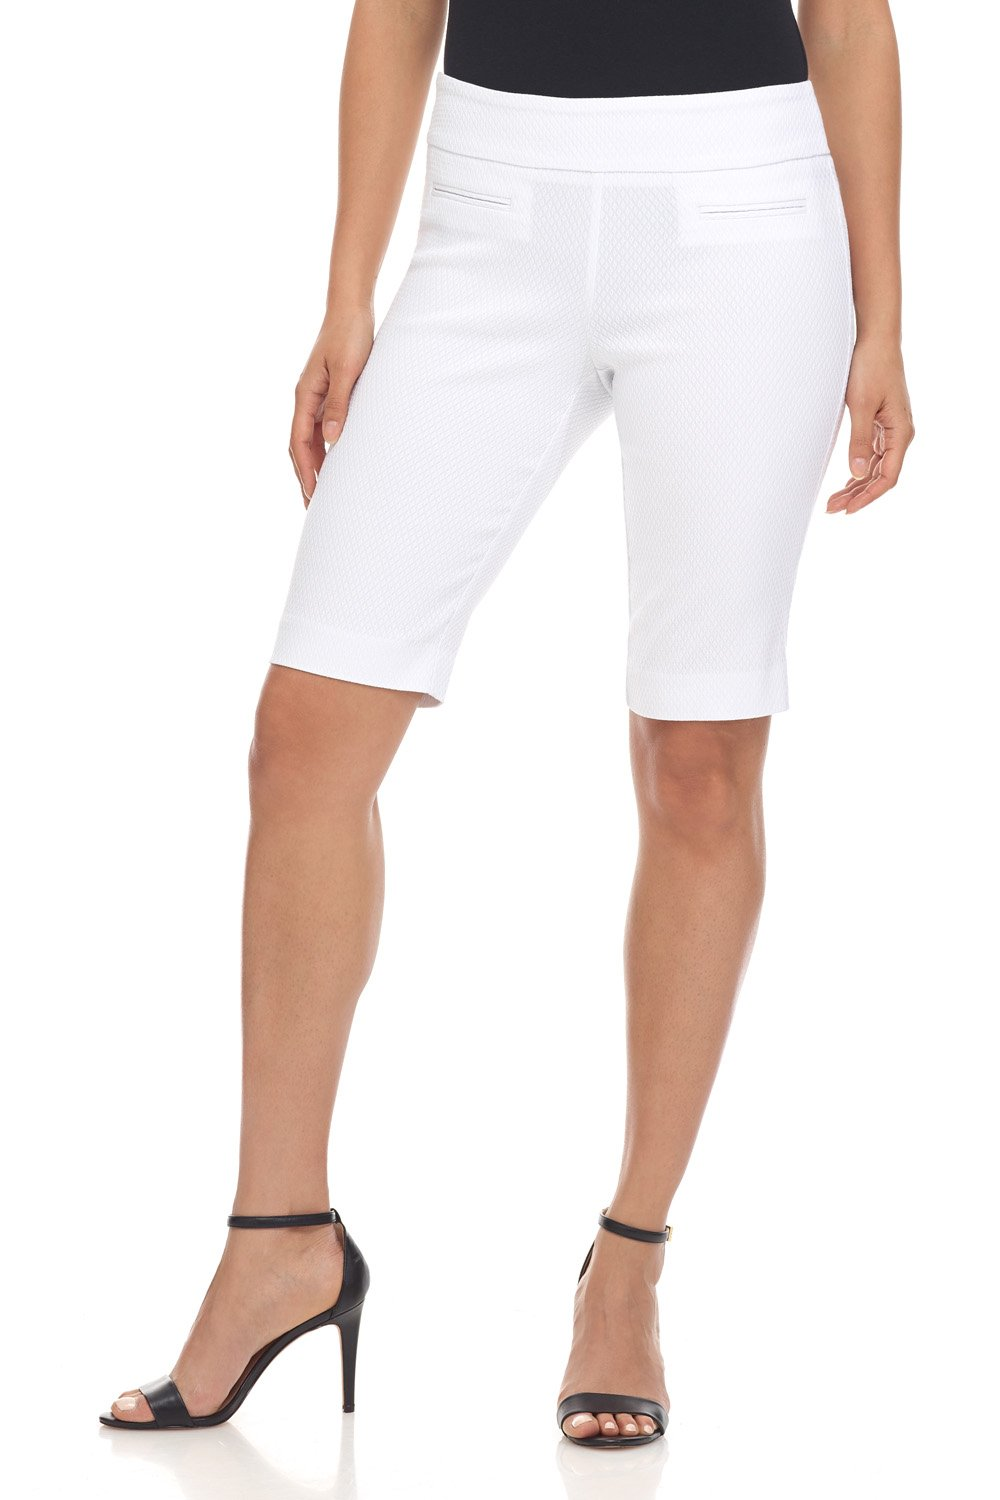 Rekucci Women's Ease in to Comfort Fit Pull-On Modern City Shorts (10,White Diamond Texture)